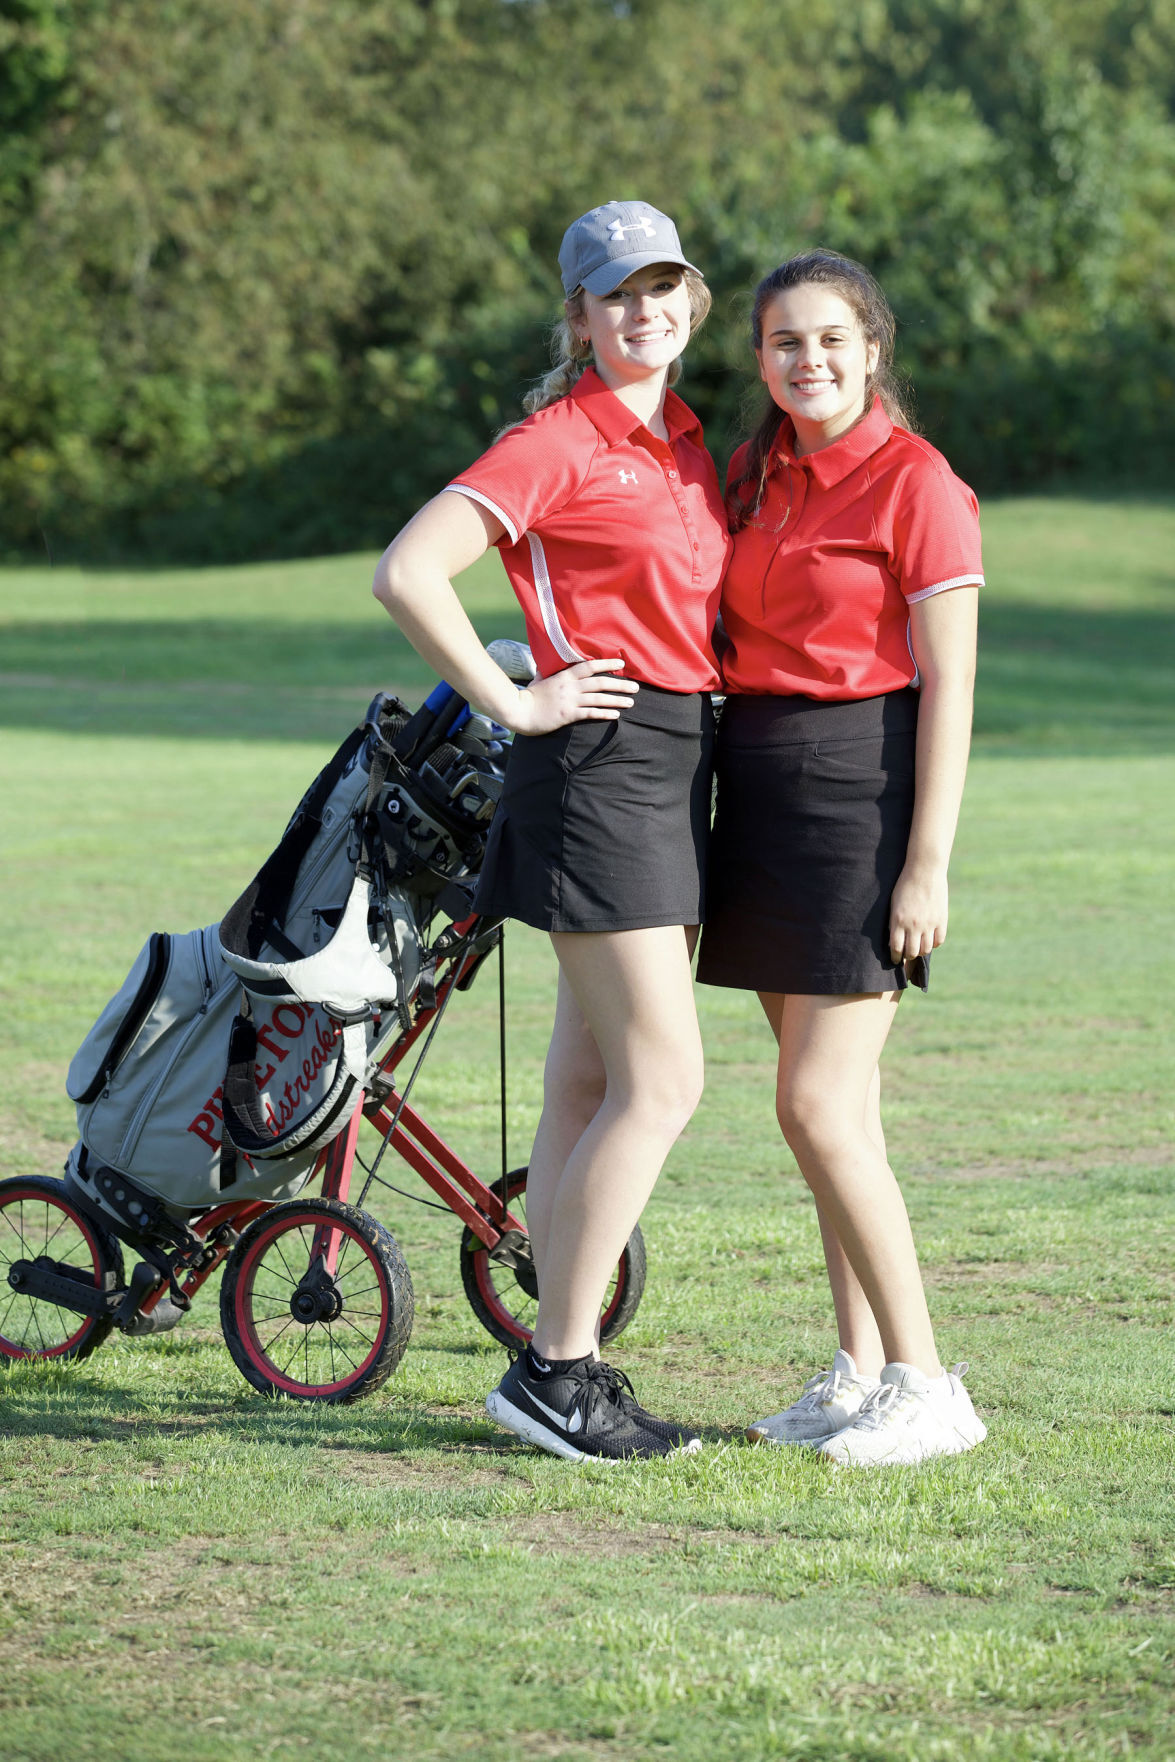 Co-medalists - Maggie Armstrong and Brynna Spencer